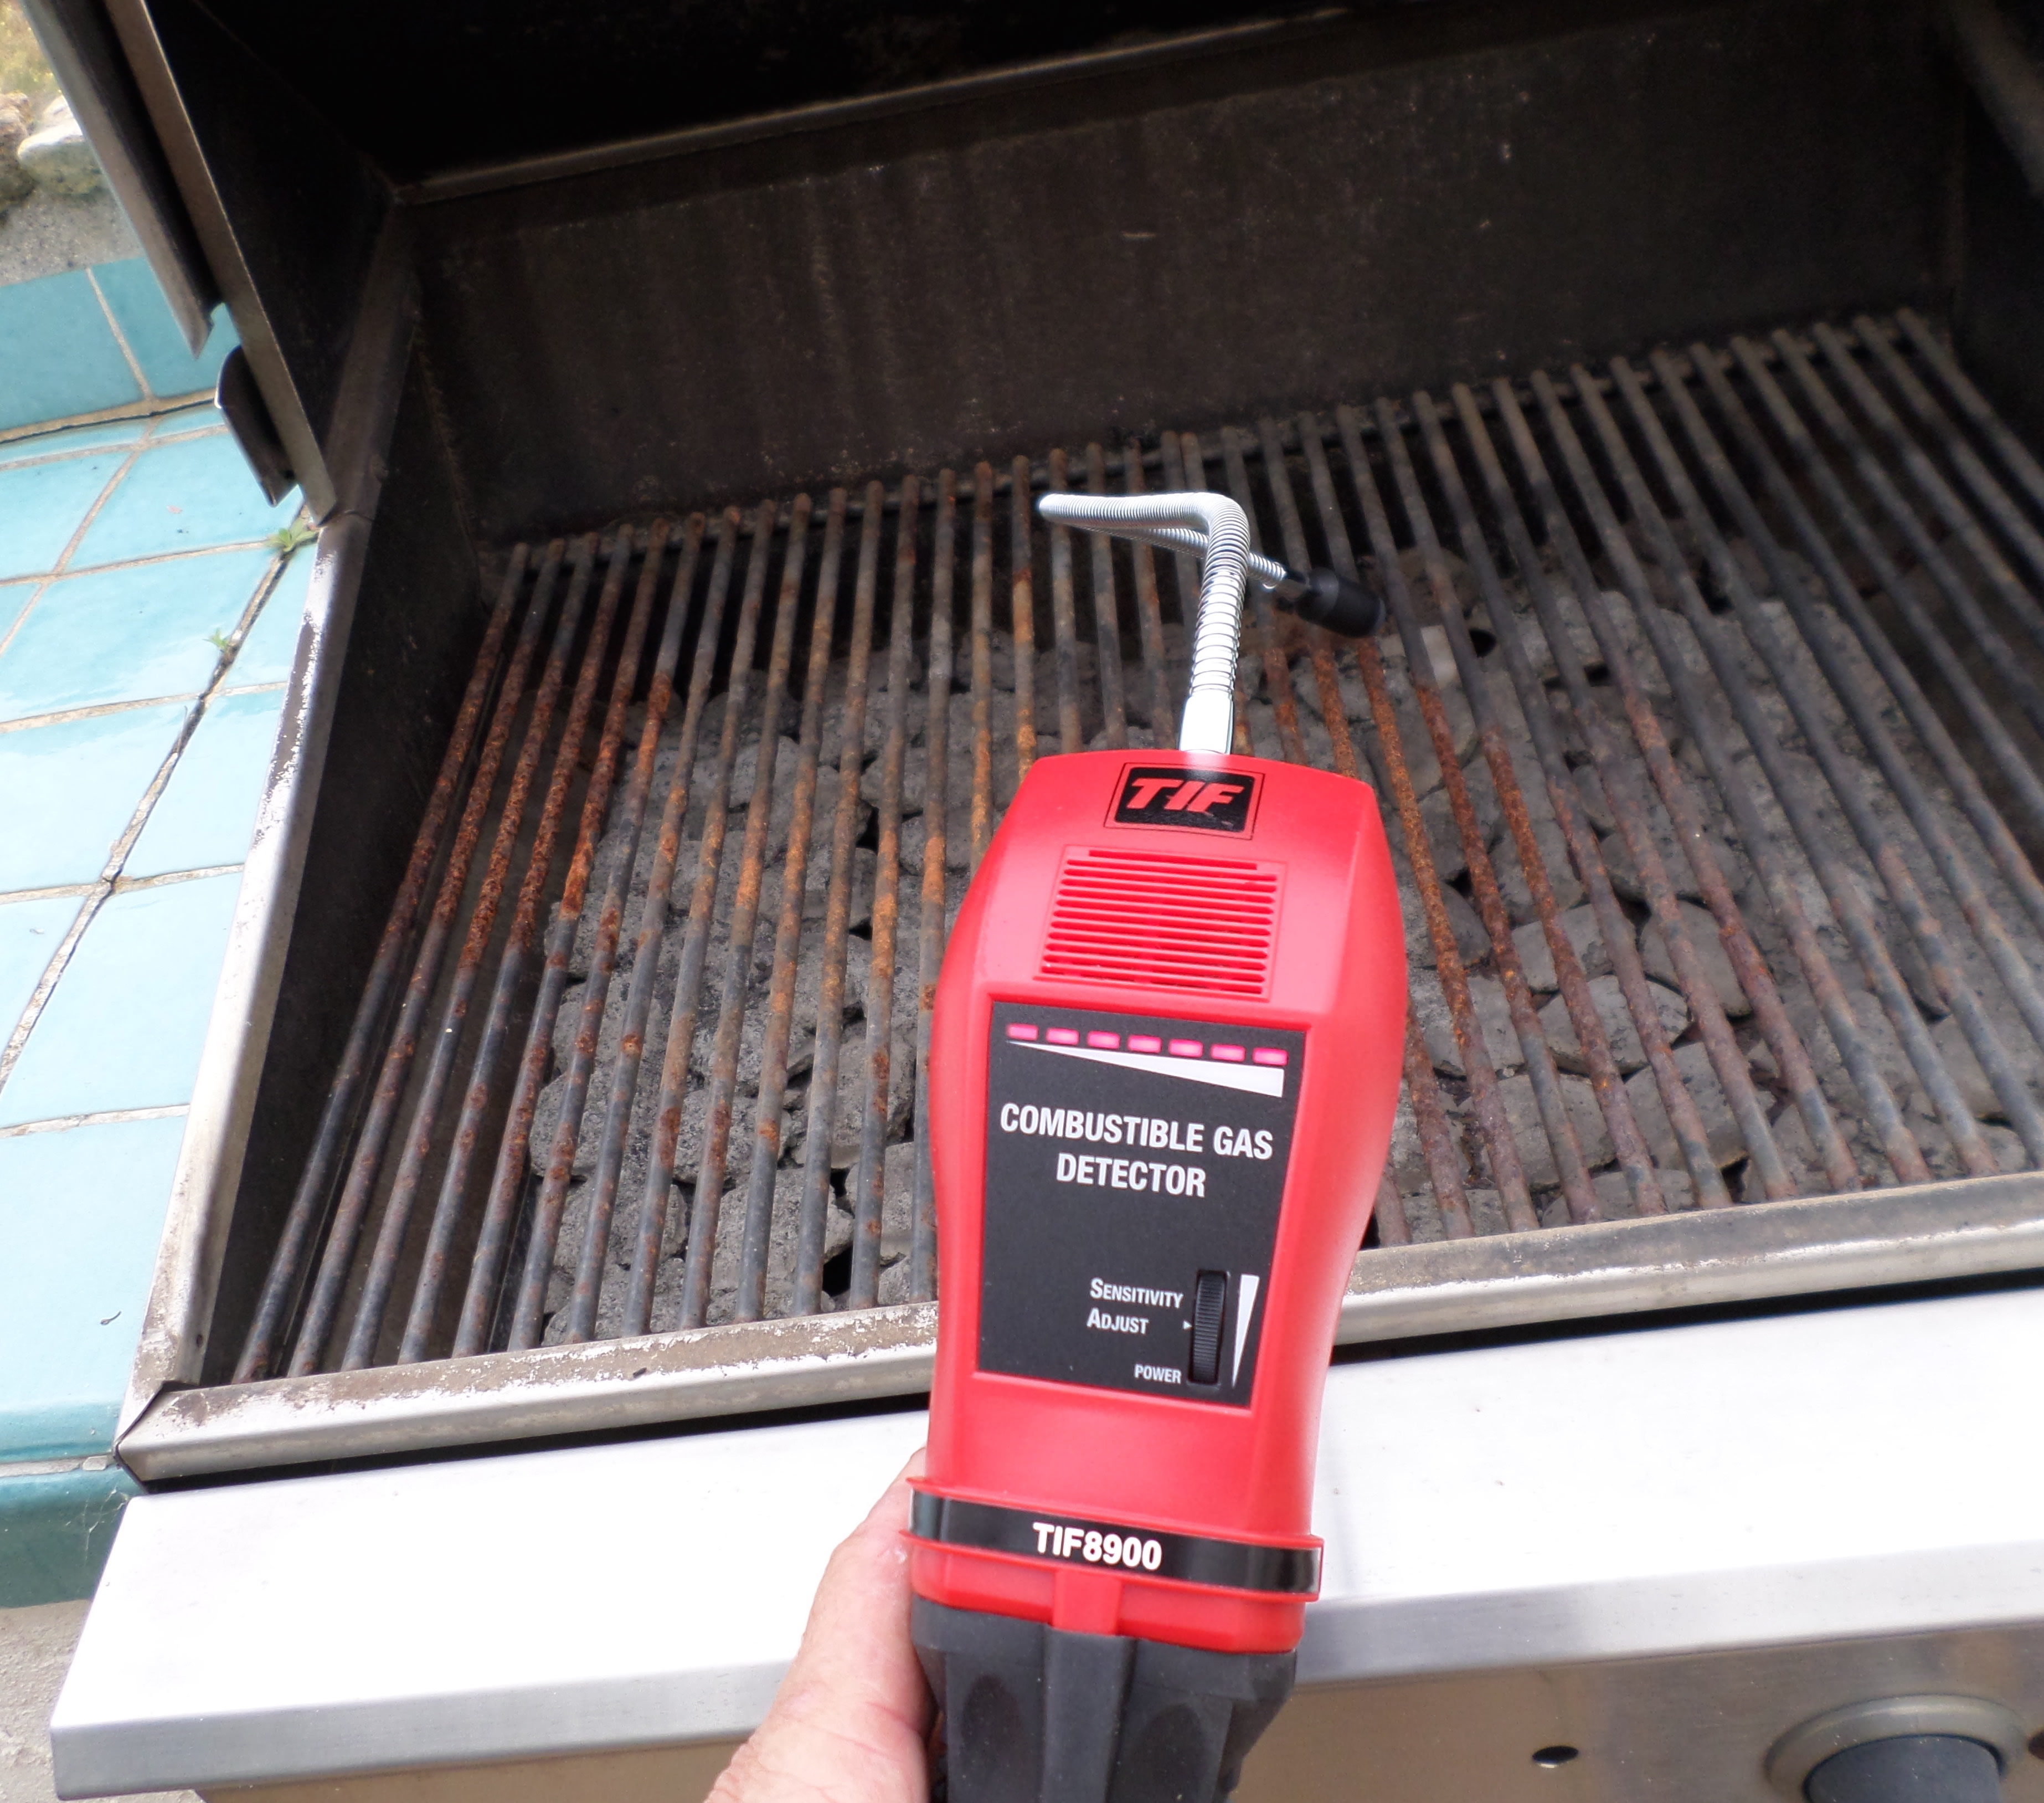 Combustible gas detector.